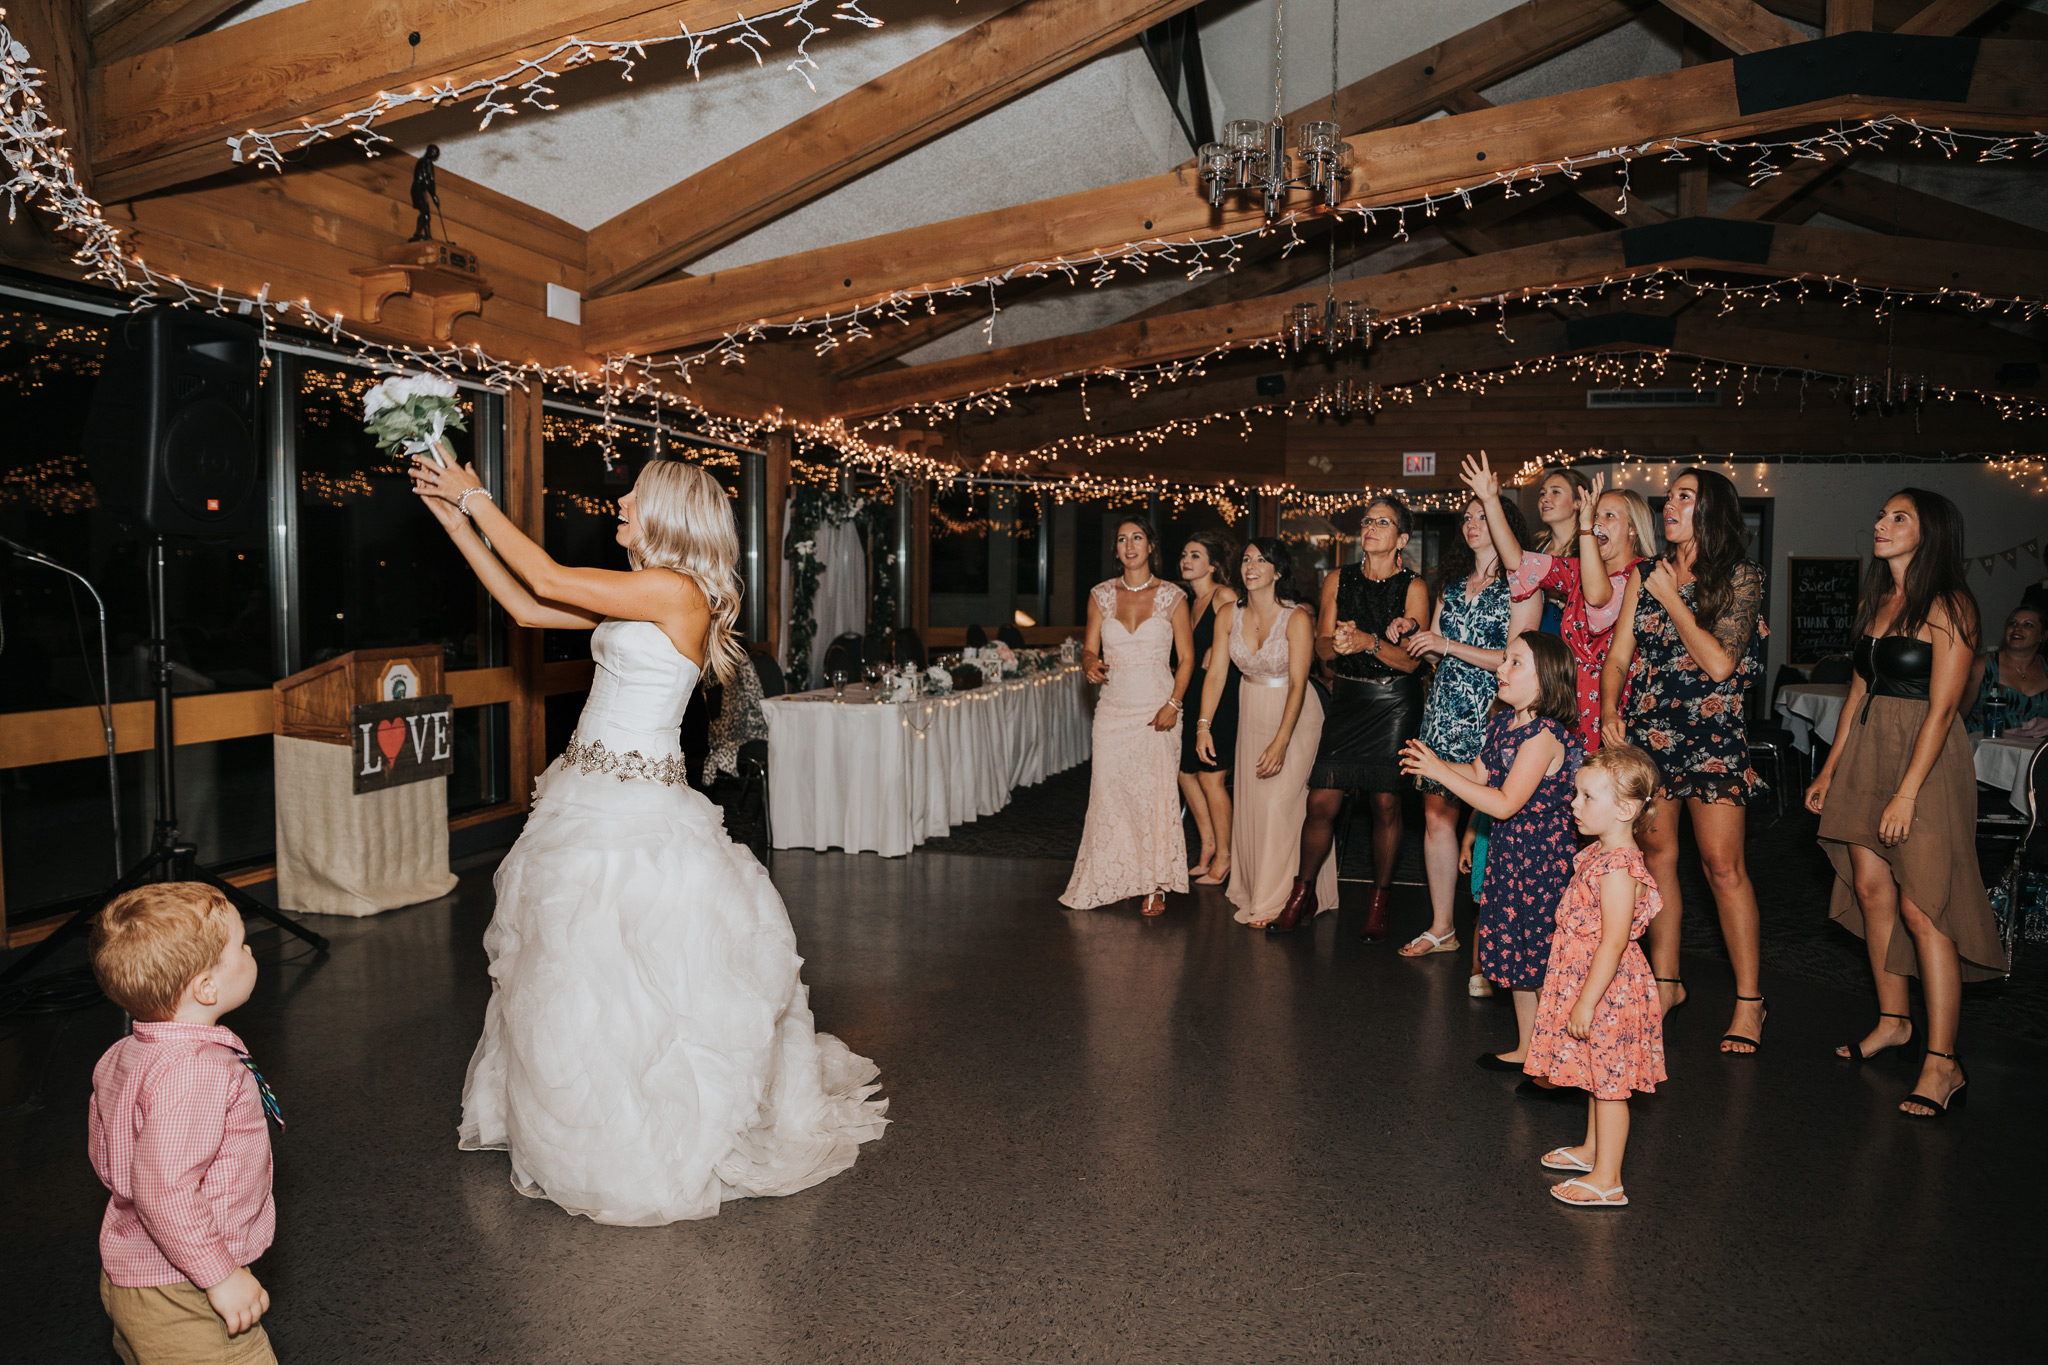 bride tossing her wedding bouquet at reception